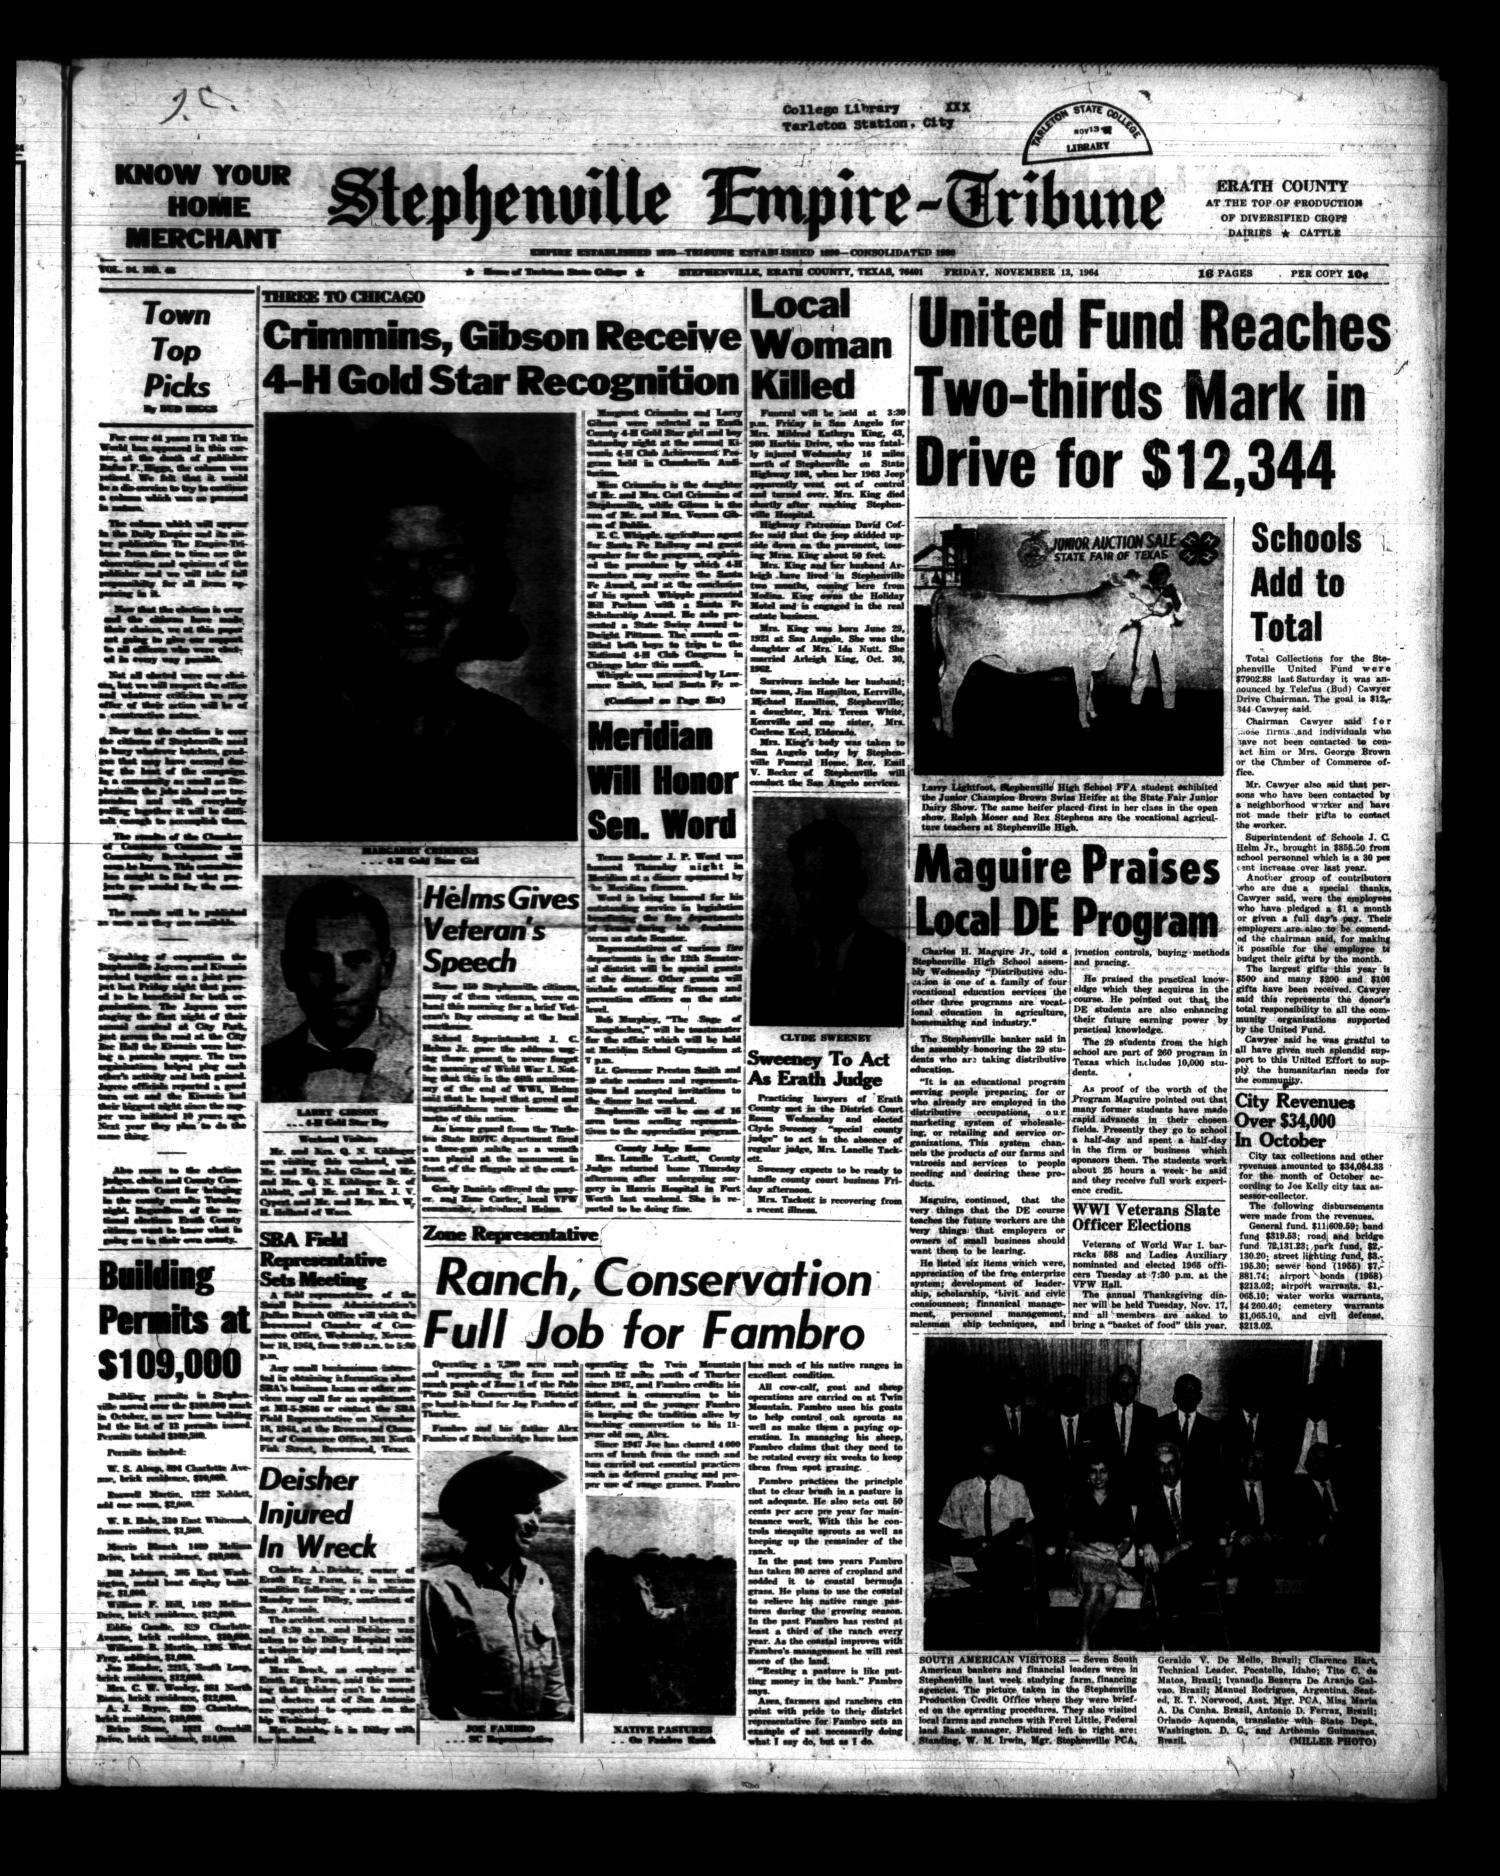 Stephenville Empire-Tribune (Stephenville, Tex.), Vol. 94, No. [48], Ed. 1 Friday, November 13, 1964                                                                                                      [Sequence #]: 1 of 16